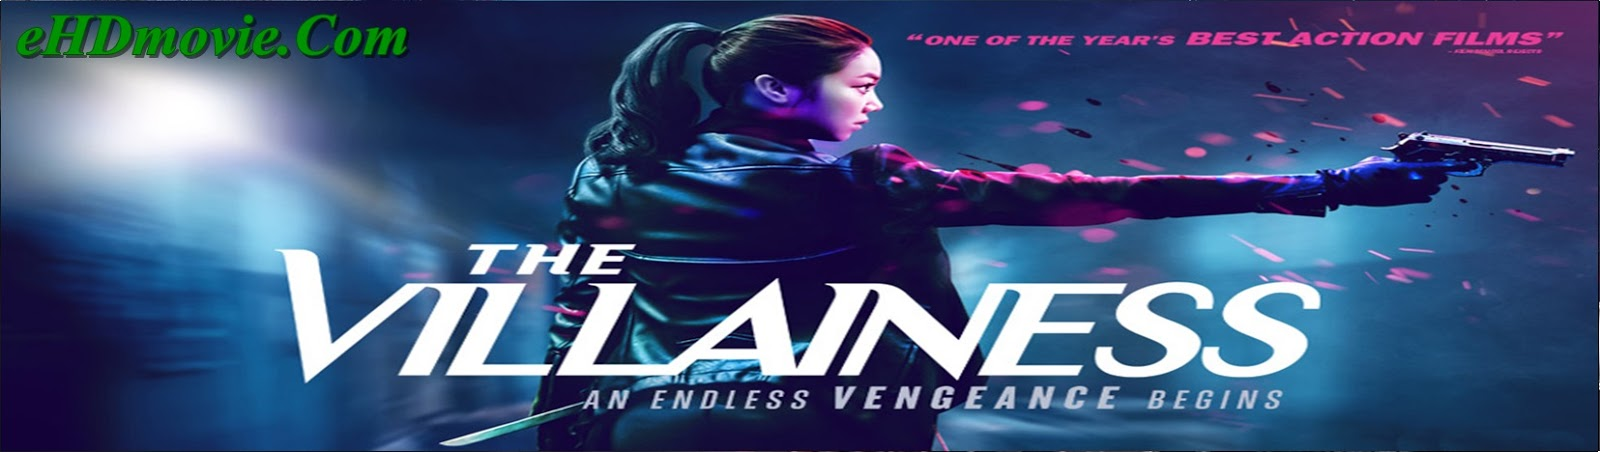 The Villainess 2017 Full Movie Korean 720p - 480p ORG BRRip 450MB - 1GB ESubs Free Download